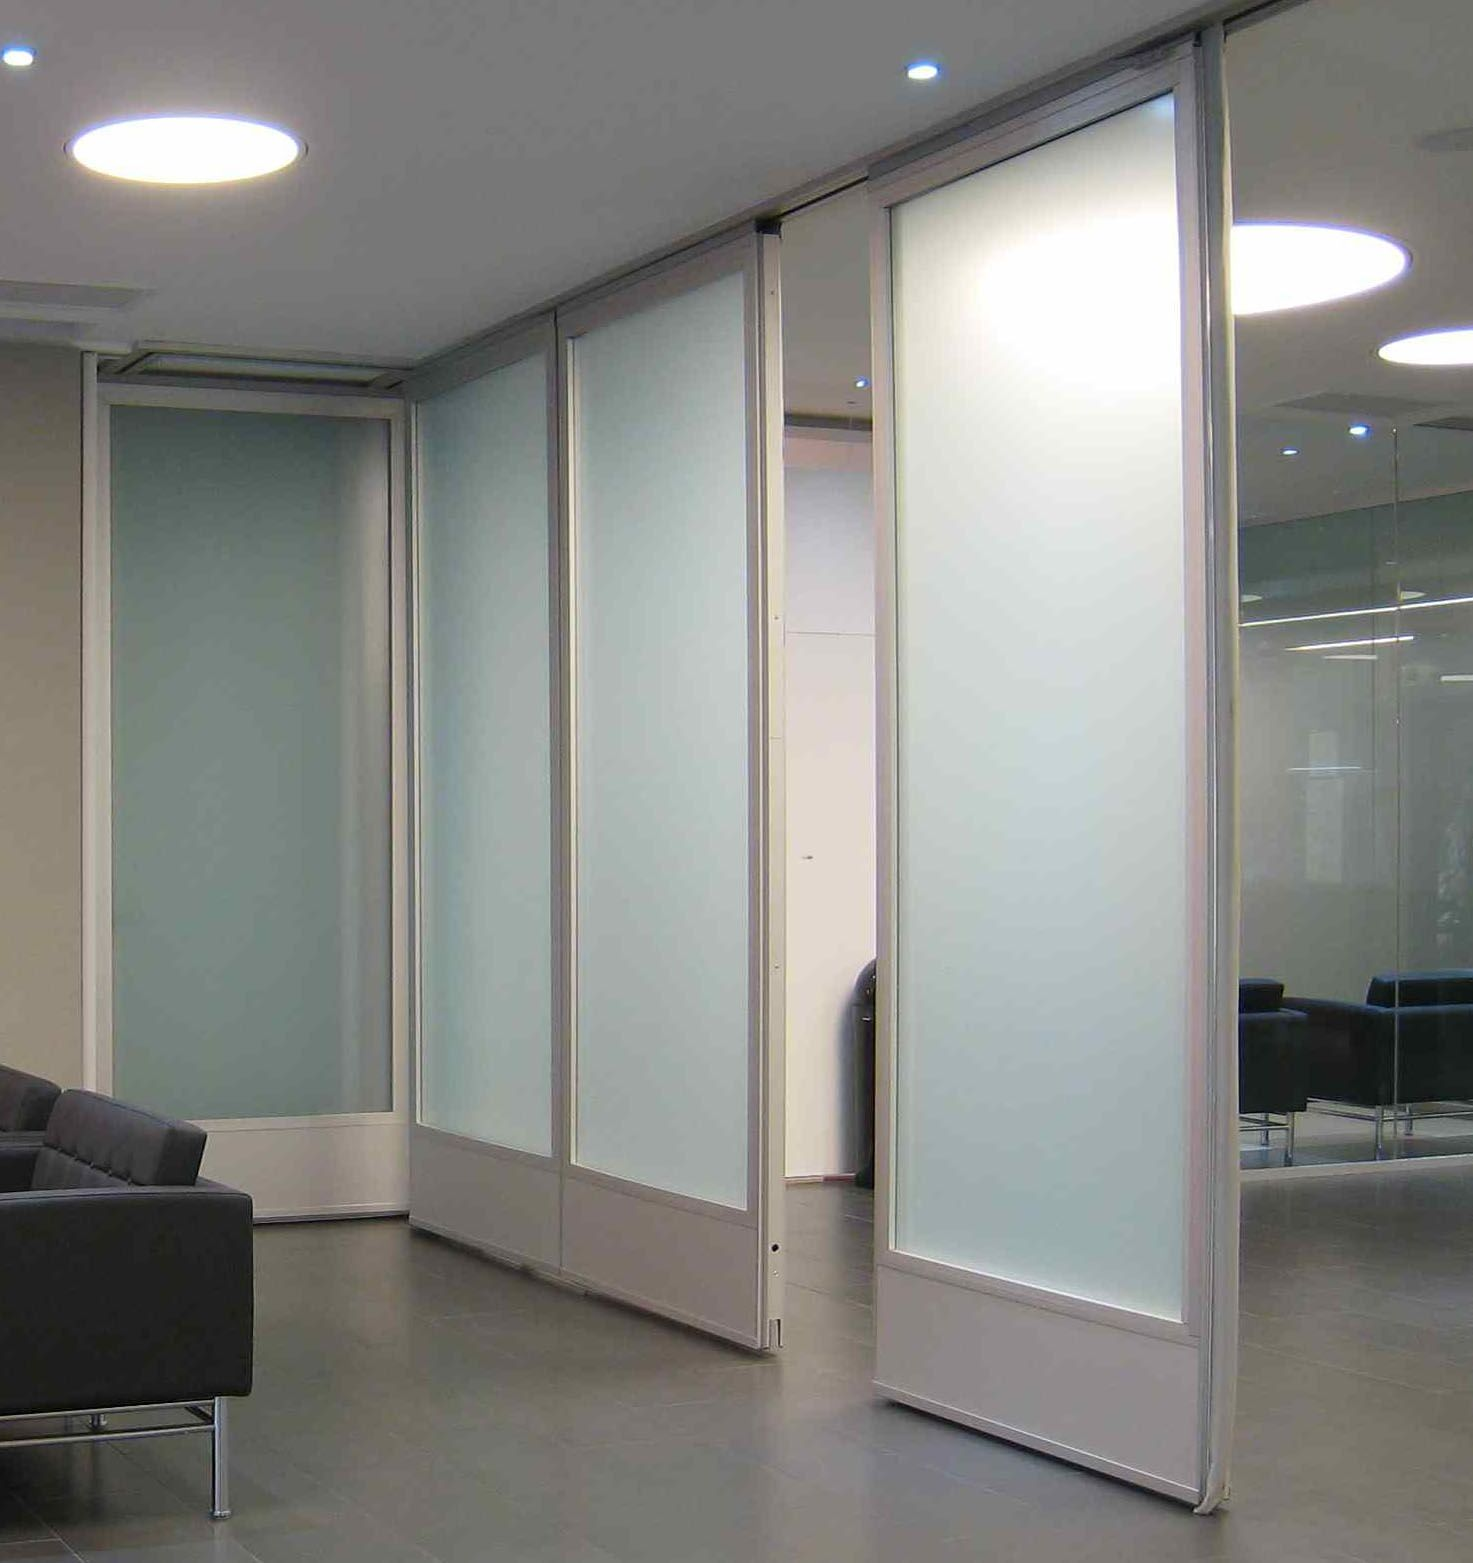 Glass Dividers Interior Design Opaque Glass Wall Dividers Google Search Home